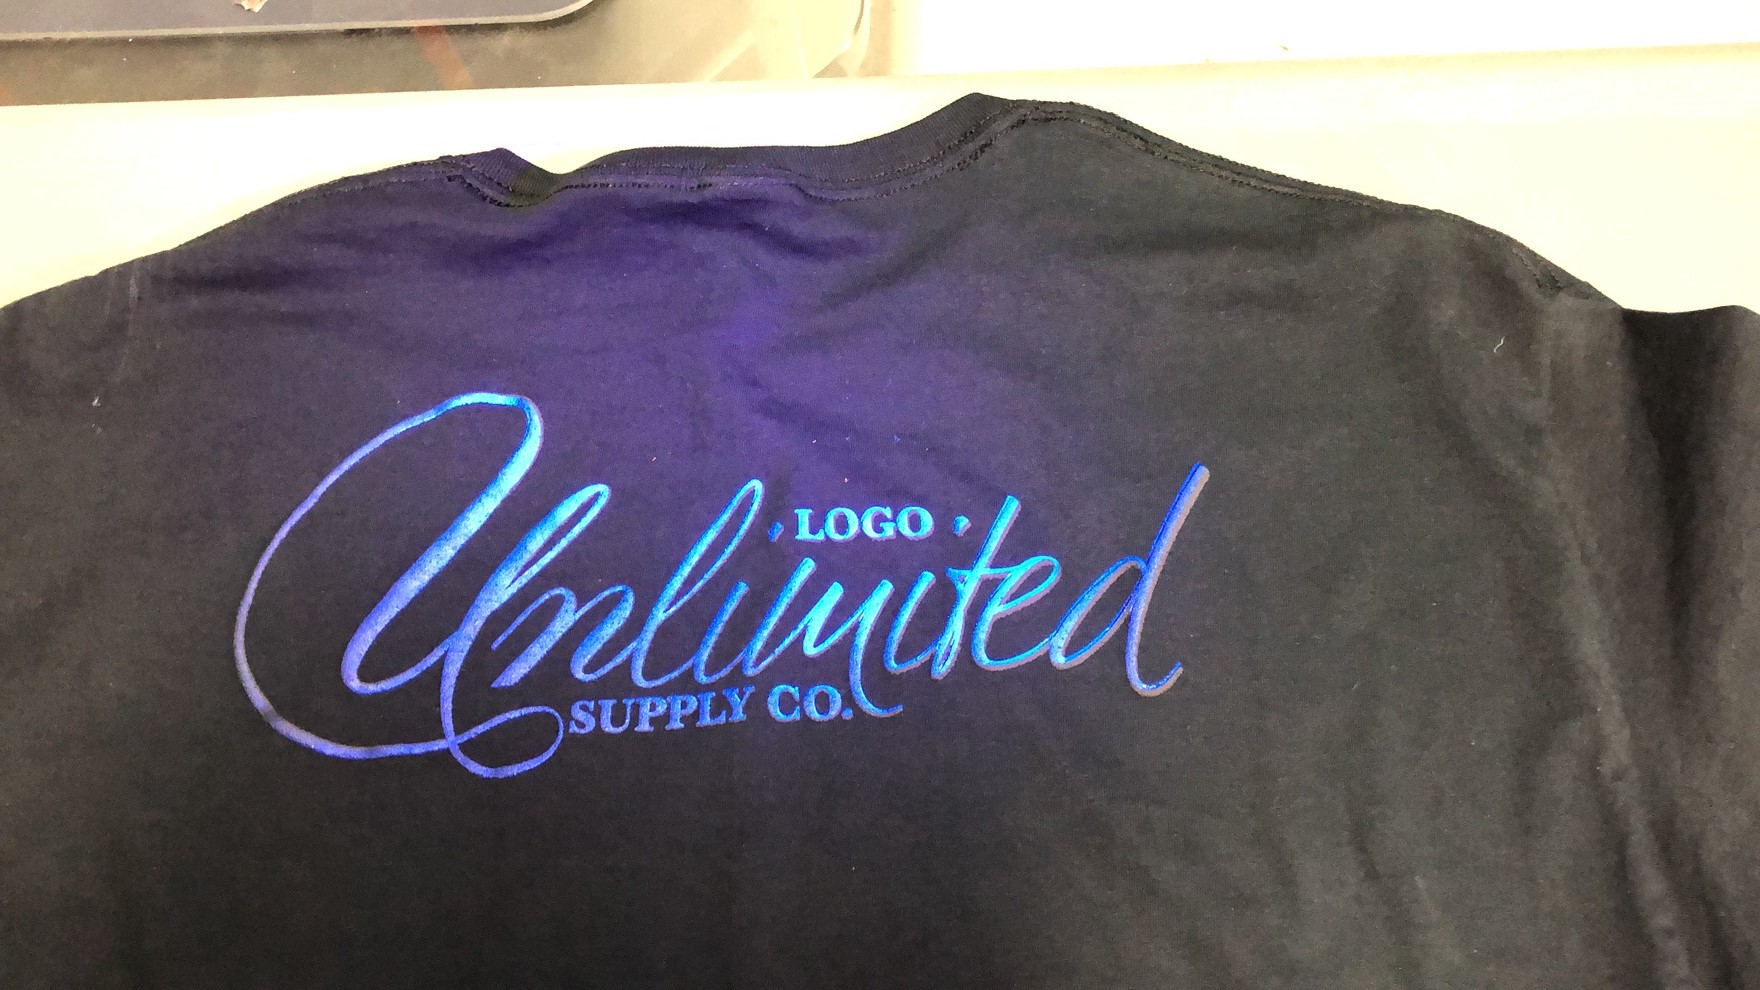 logounltd_laser_etching_embroidery_screen_printing_apparel_uniform_custom_tshirts_kirkland_bellevue_seattle_redmond_woodinville_branded_merchandise_promotional_products_logo_unltd_black_light_glow_dark (1).JPG